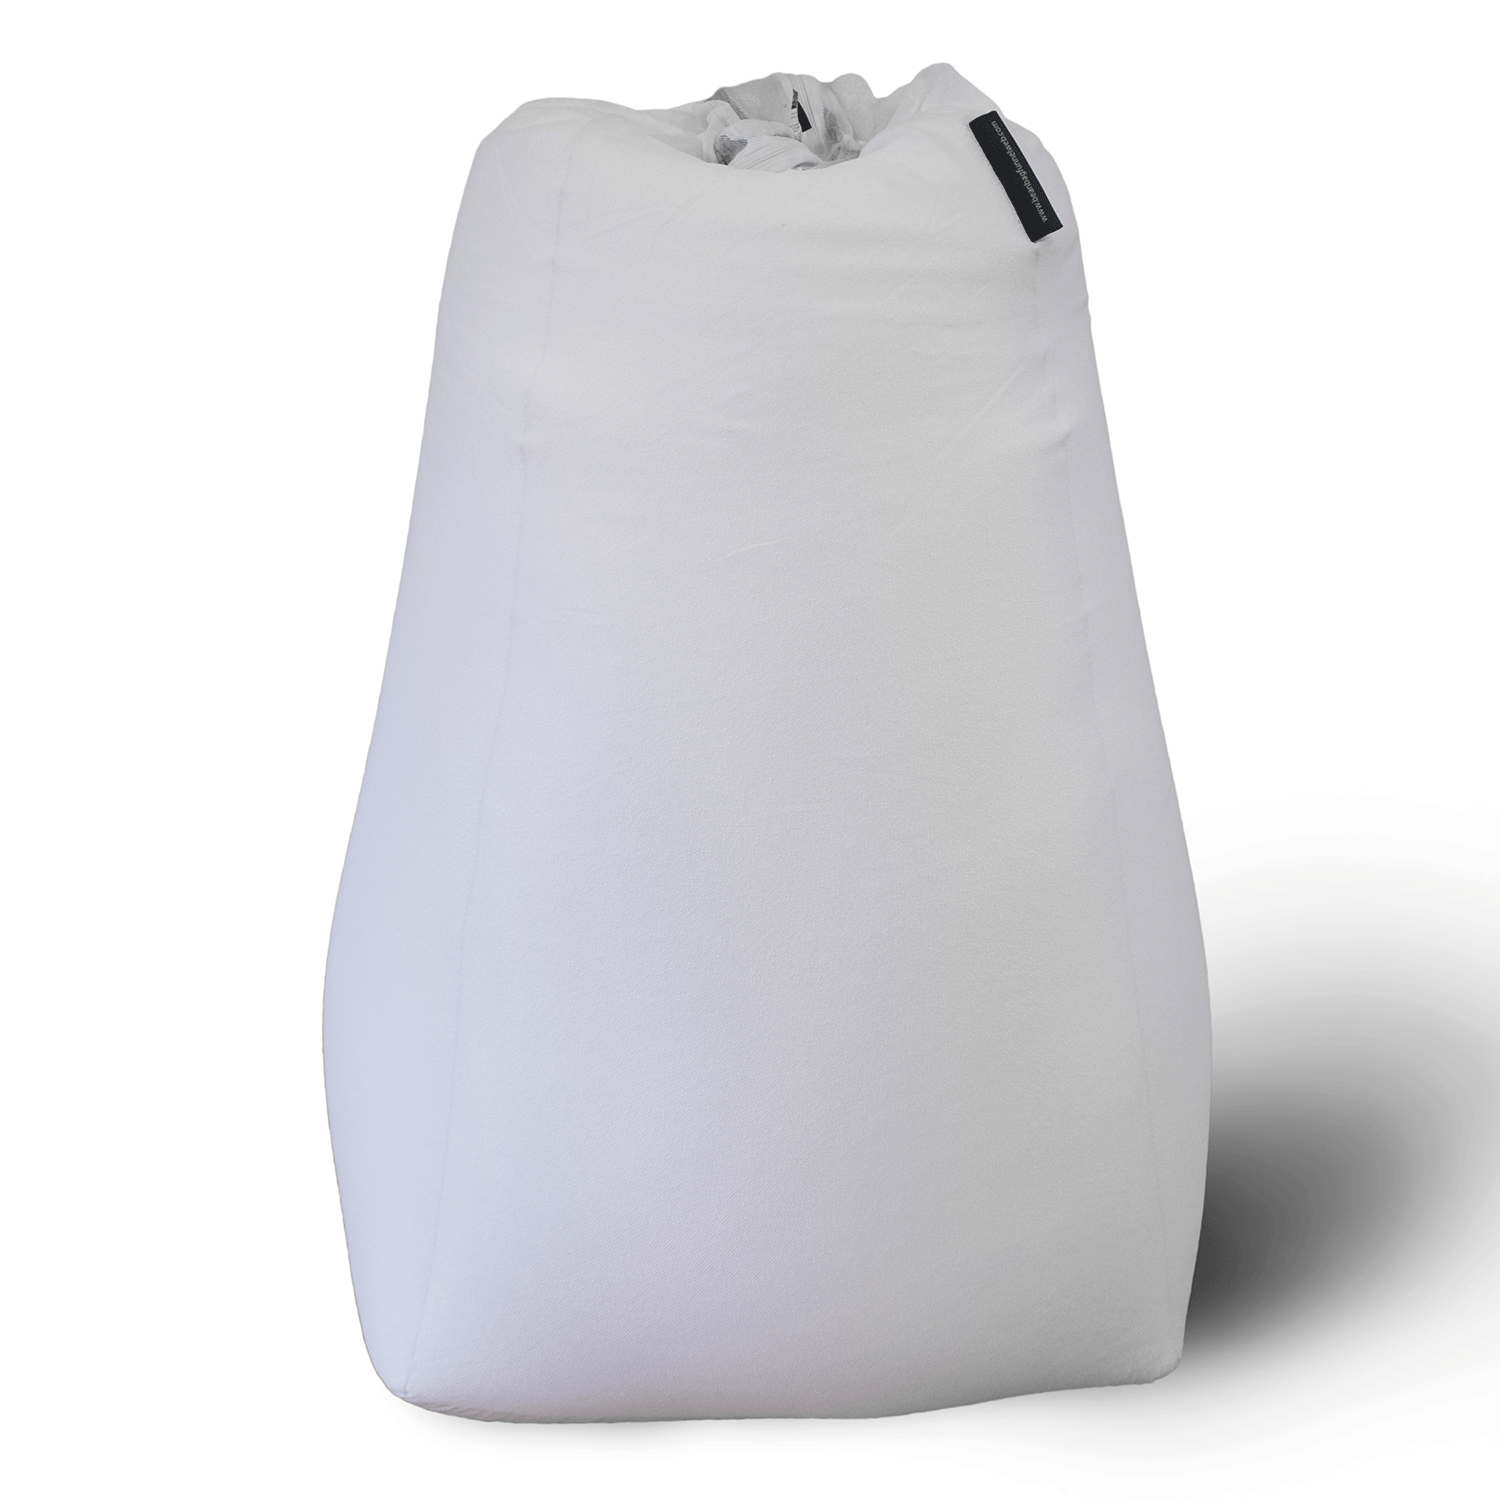 Bean Bag Filling Polystyrene Bean Bag Refill Bean Bag